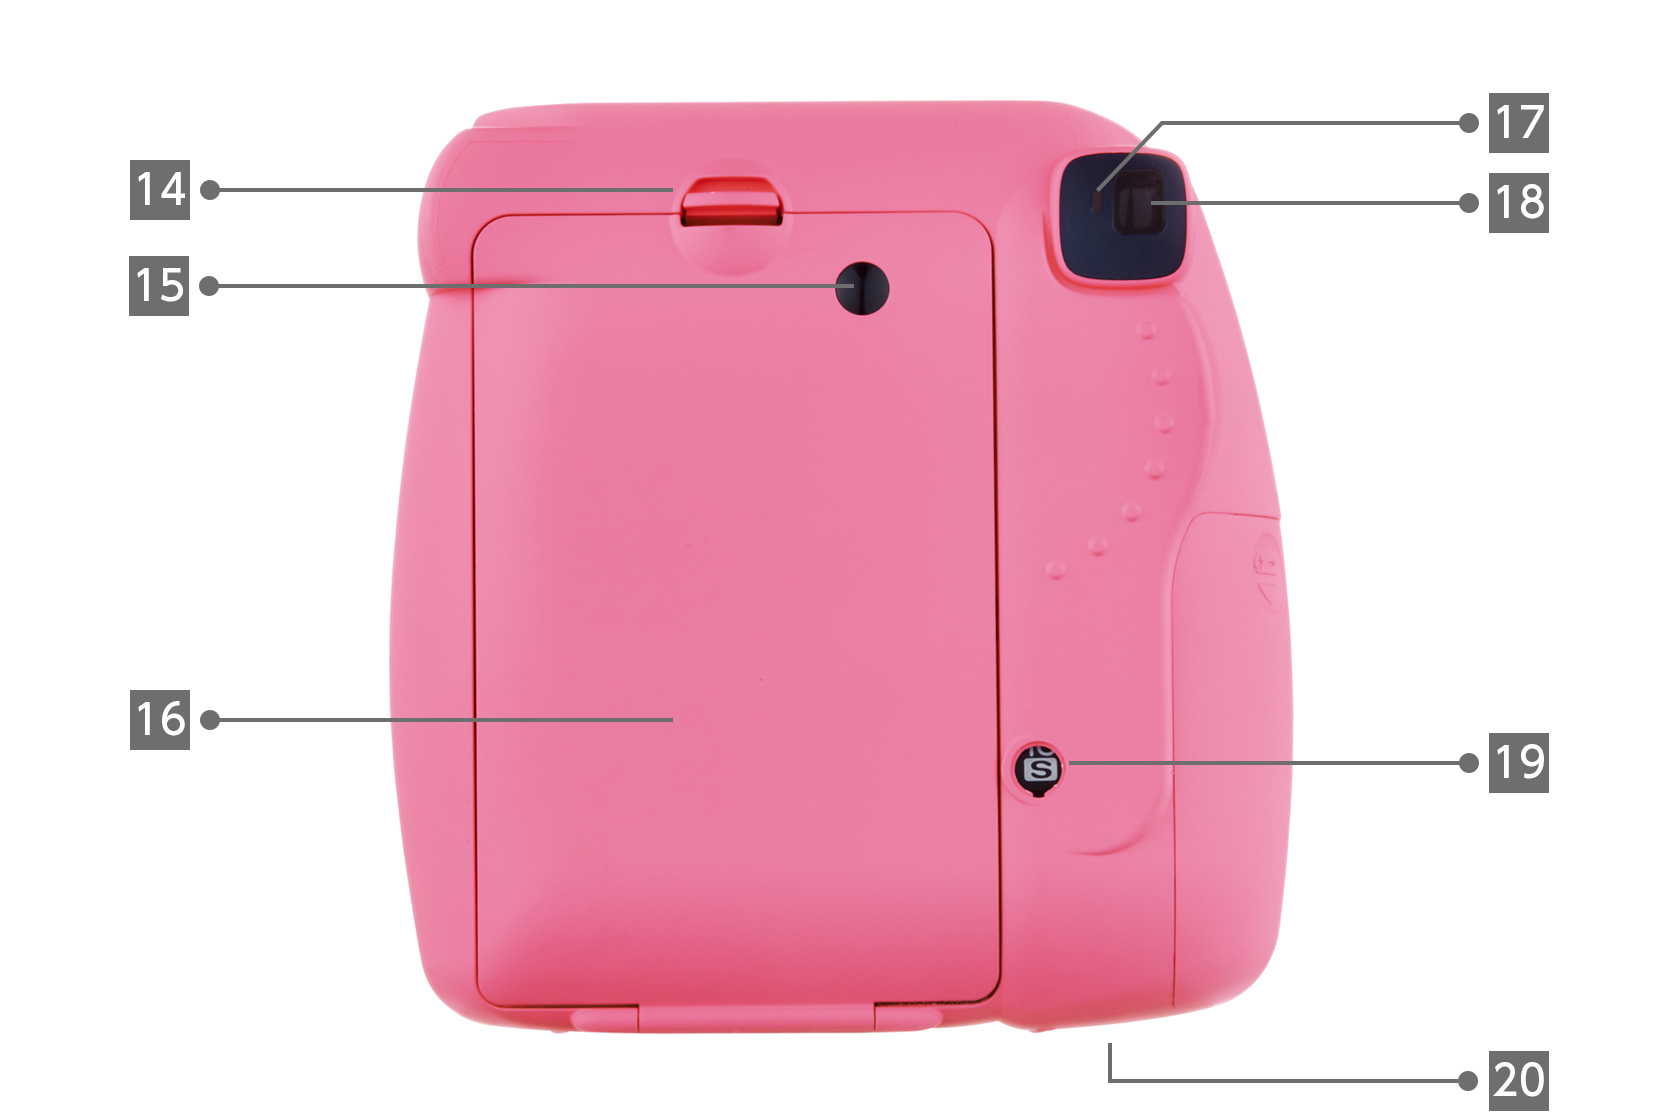 Back view of the Flamingo Pink Mini 9 camera